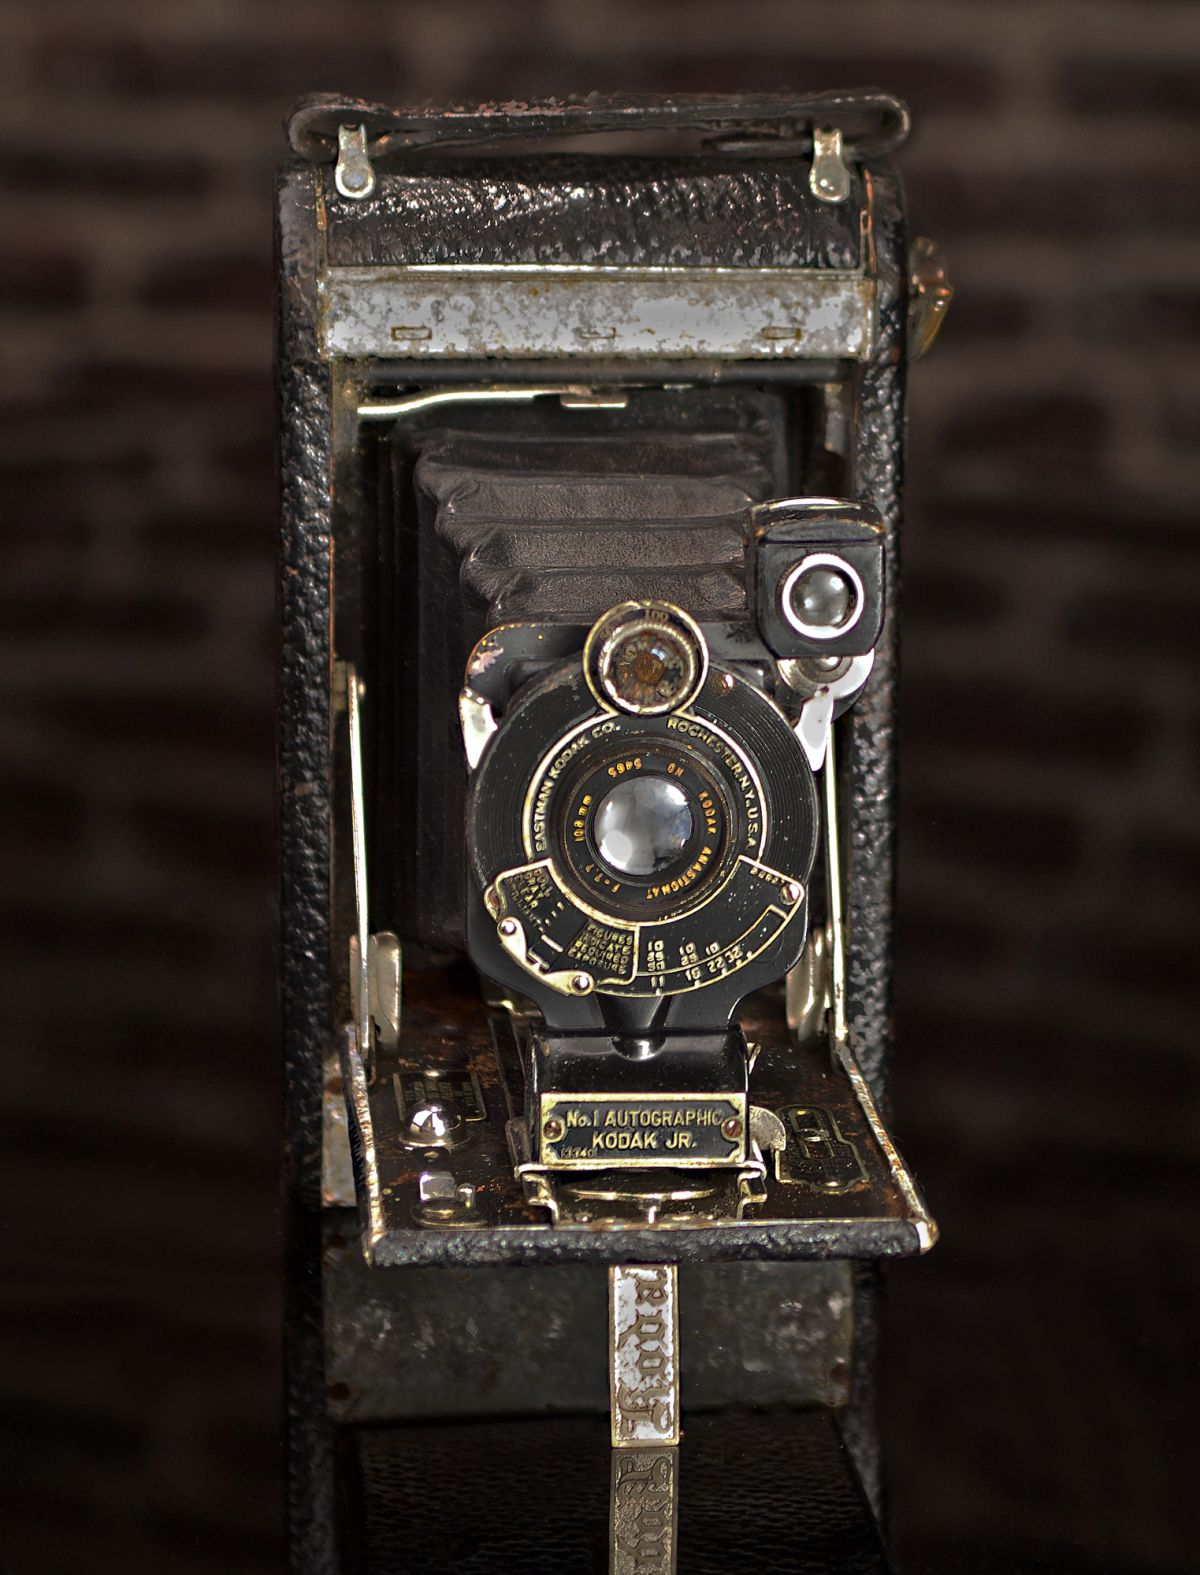 NO 1 AUTOGRAPHIC KODAK JUNIOR CAMERA